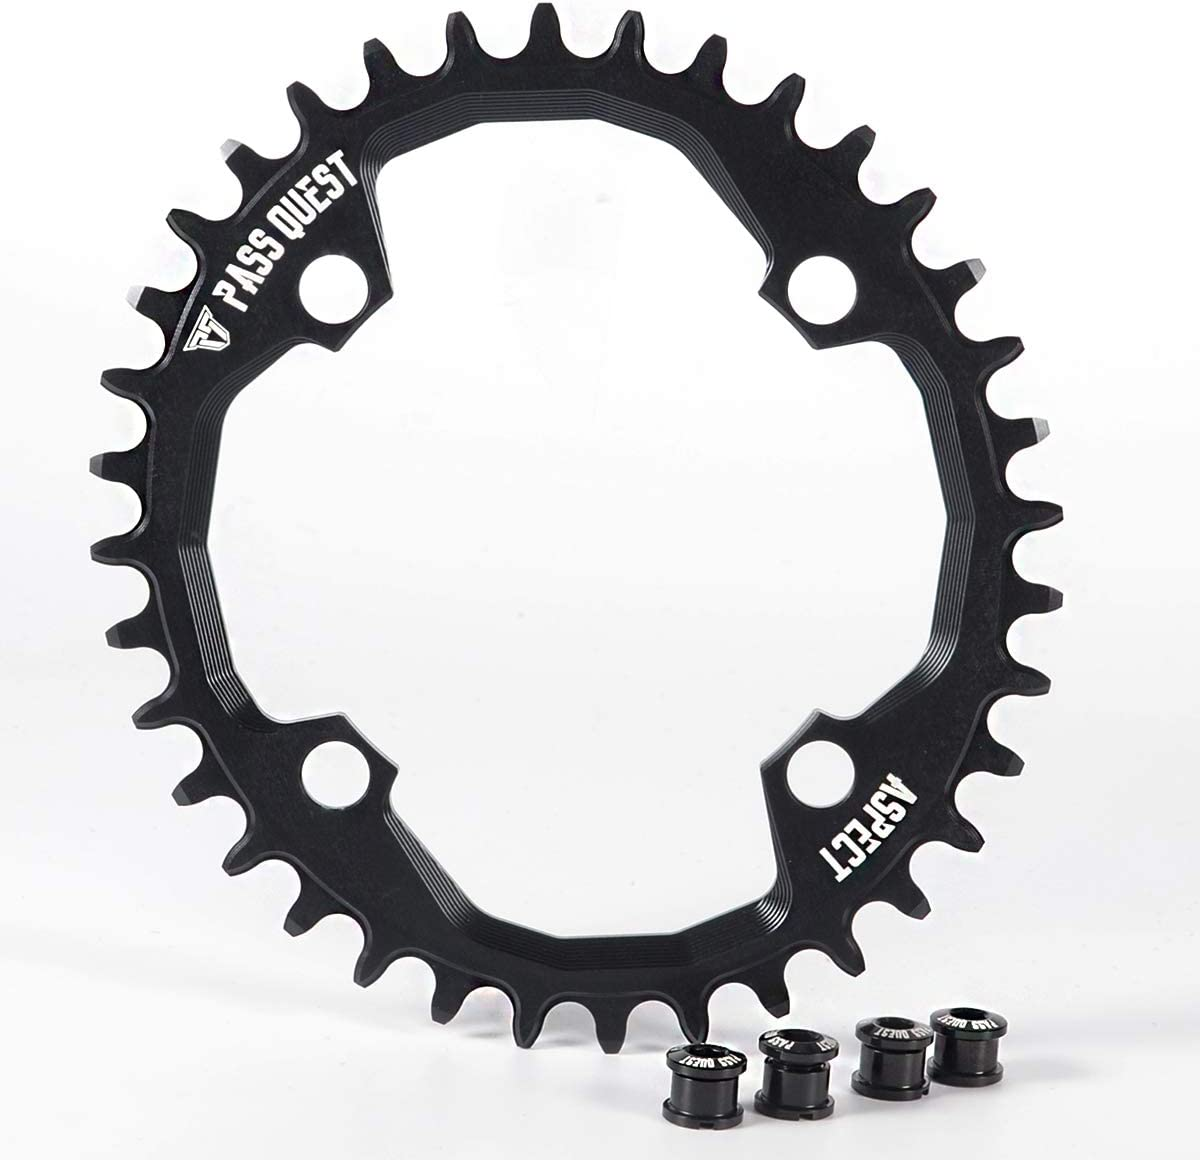 PASS QUEST Oval 104BCD MTB Narrow Wide Chainring 34T/36T/38T/40T Bike Bicycle Chainwheel/Chain Wheel Deore XT Crankset